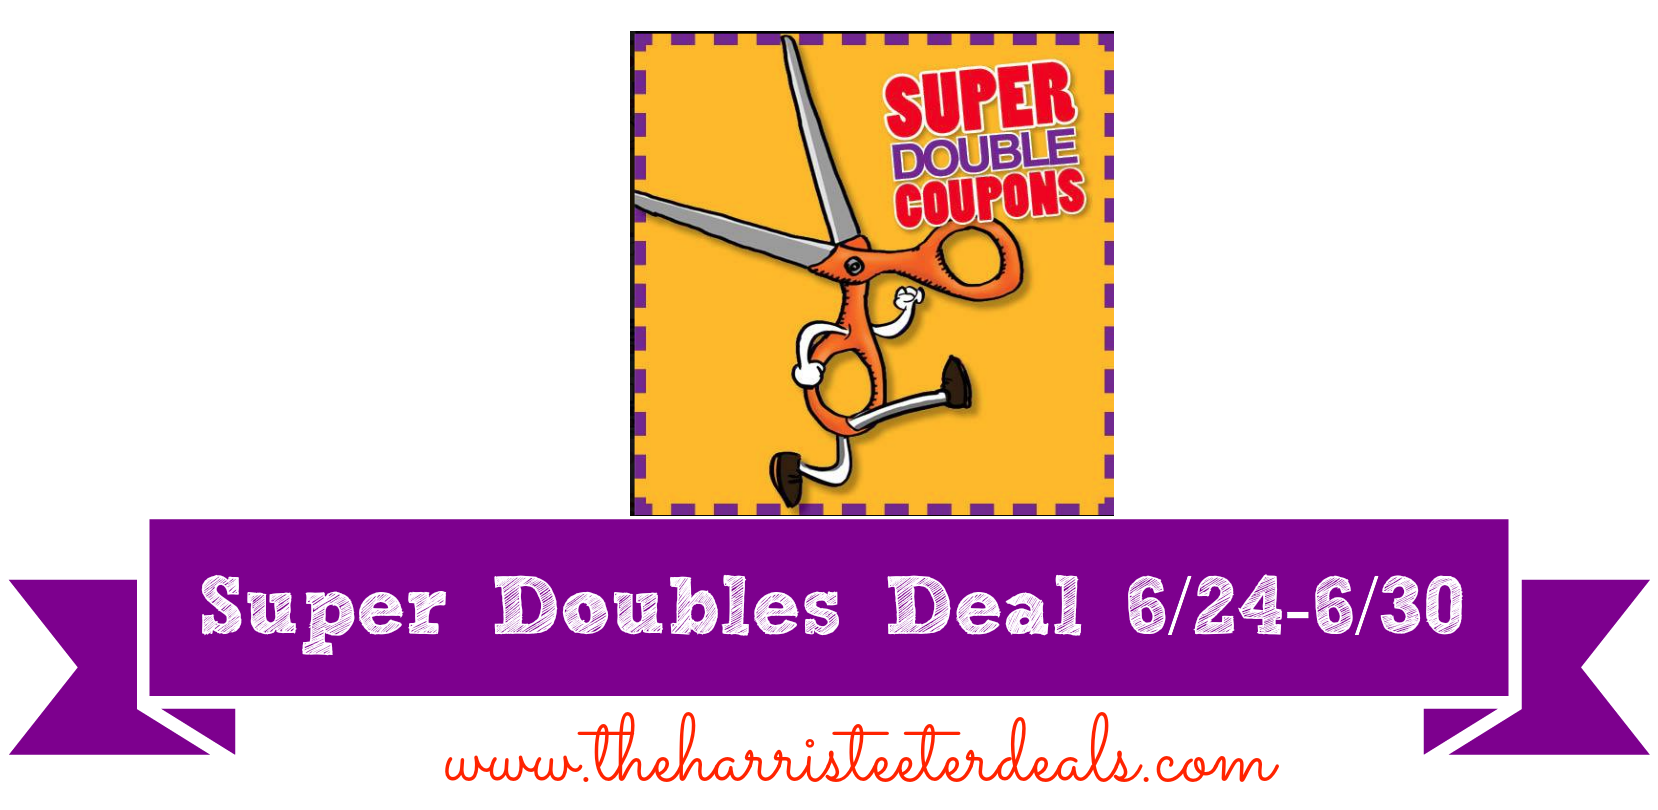 Ht super double coupons